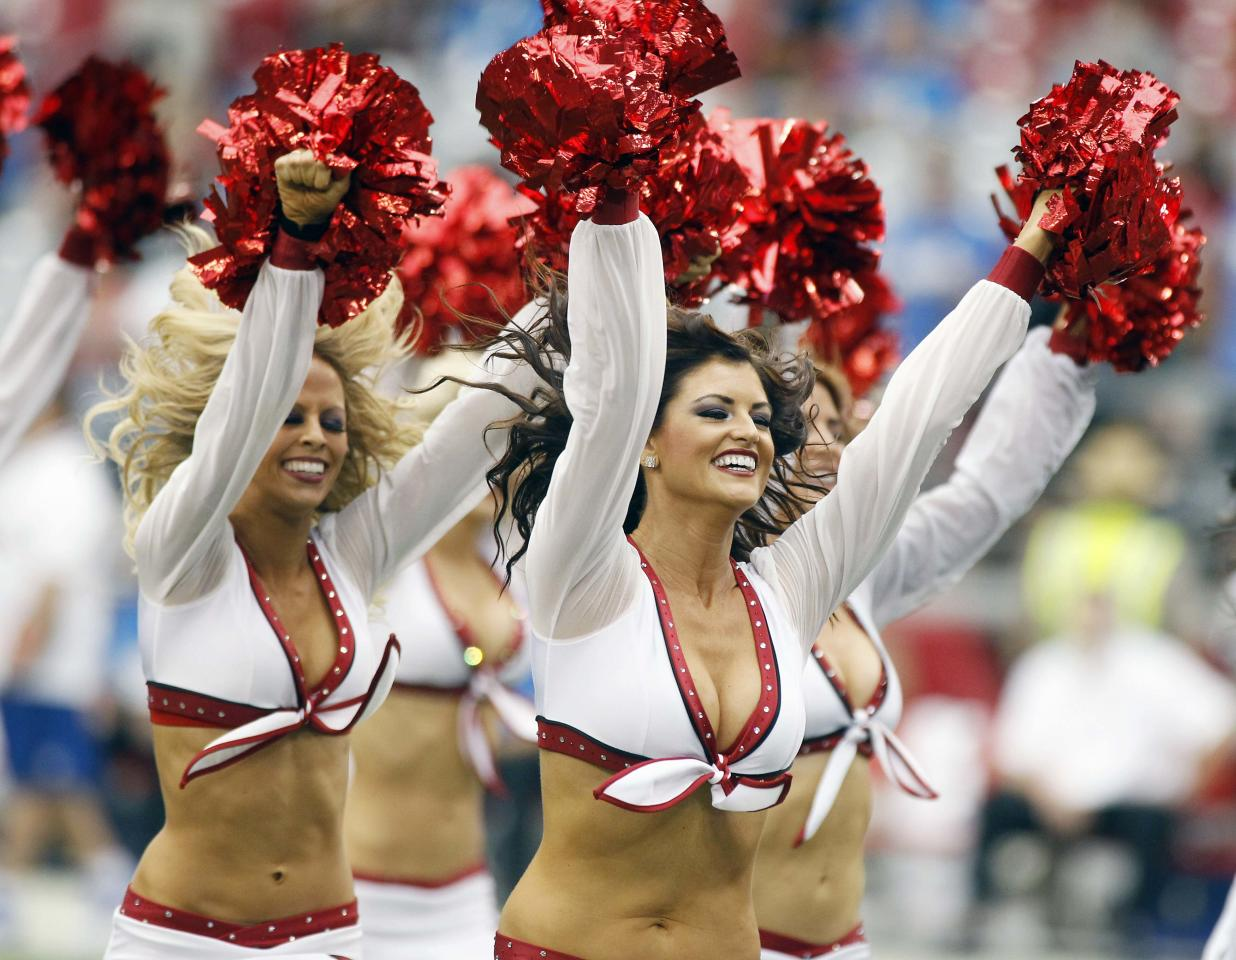 The Arizona Cardinals cheerleaders perform during the first half of their NFL football game against the Detroit Lions in Phoenix, Arizona, September 15, 2013. REUTERS/Ralph D. Freso (UNITED STATES - Tags: SPORT FOOTBALL)